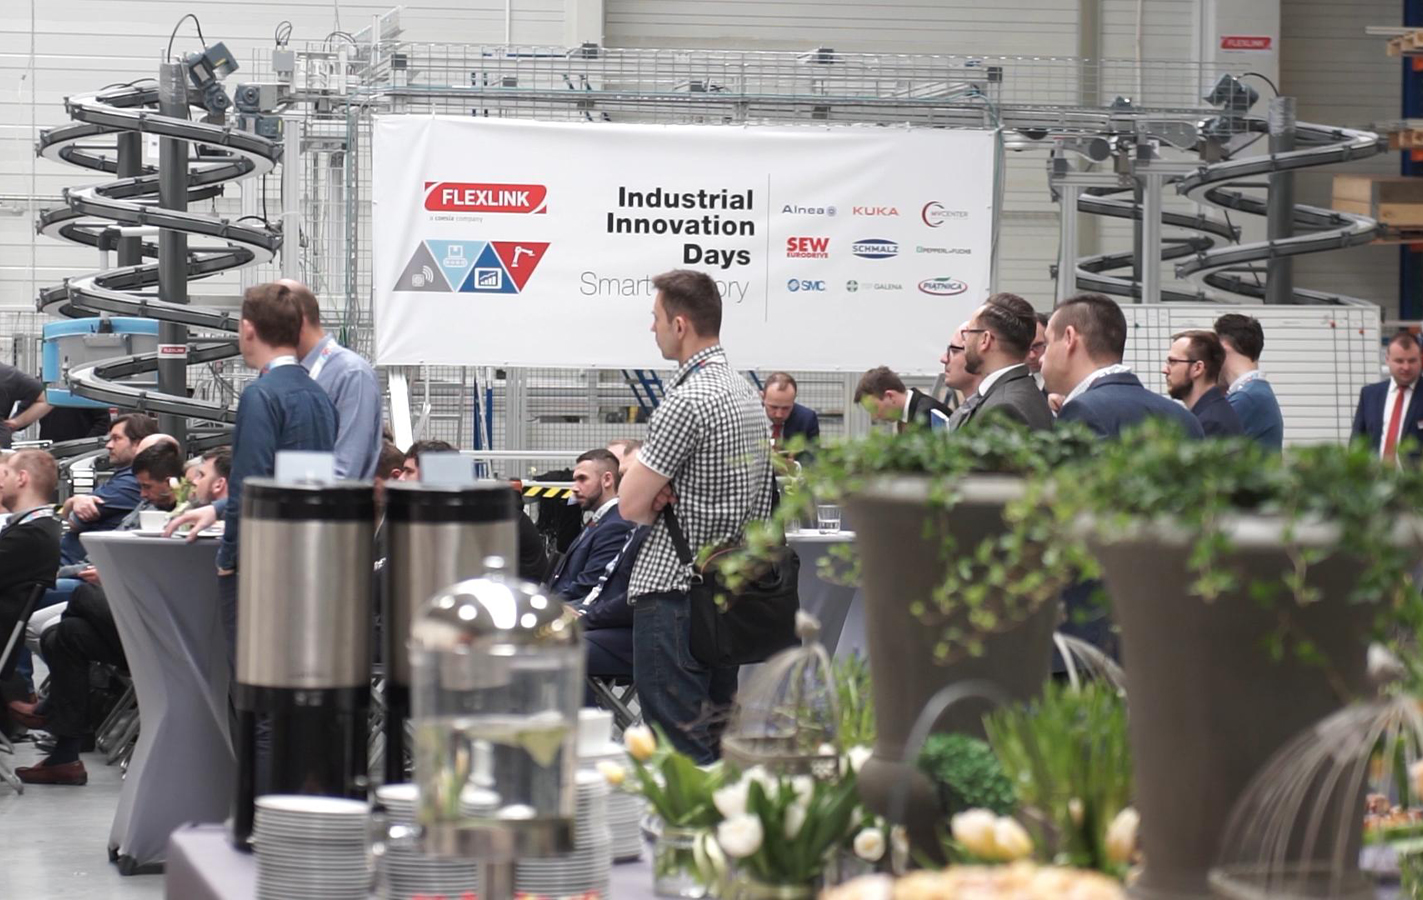 FlexLink Industrial Innovation Days Smart Factory 2018